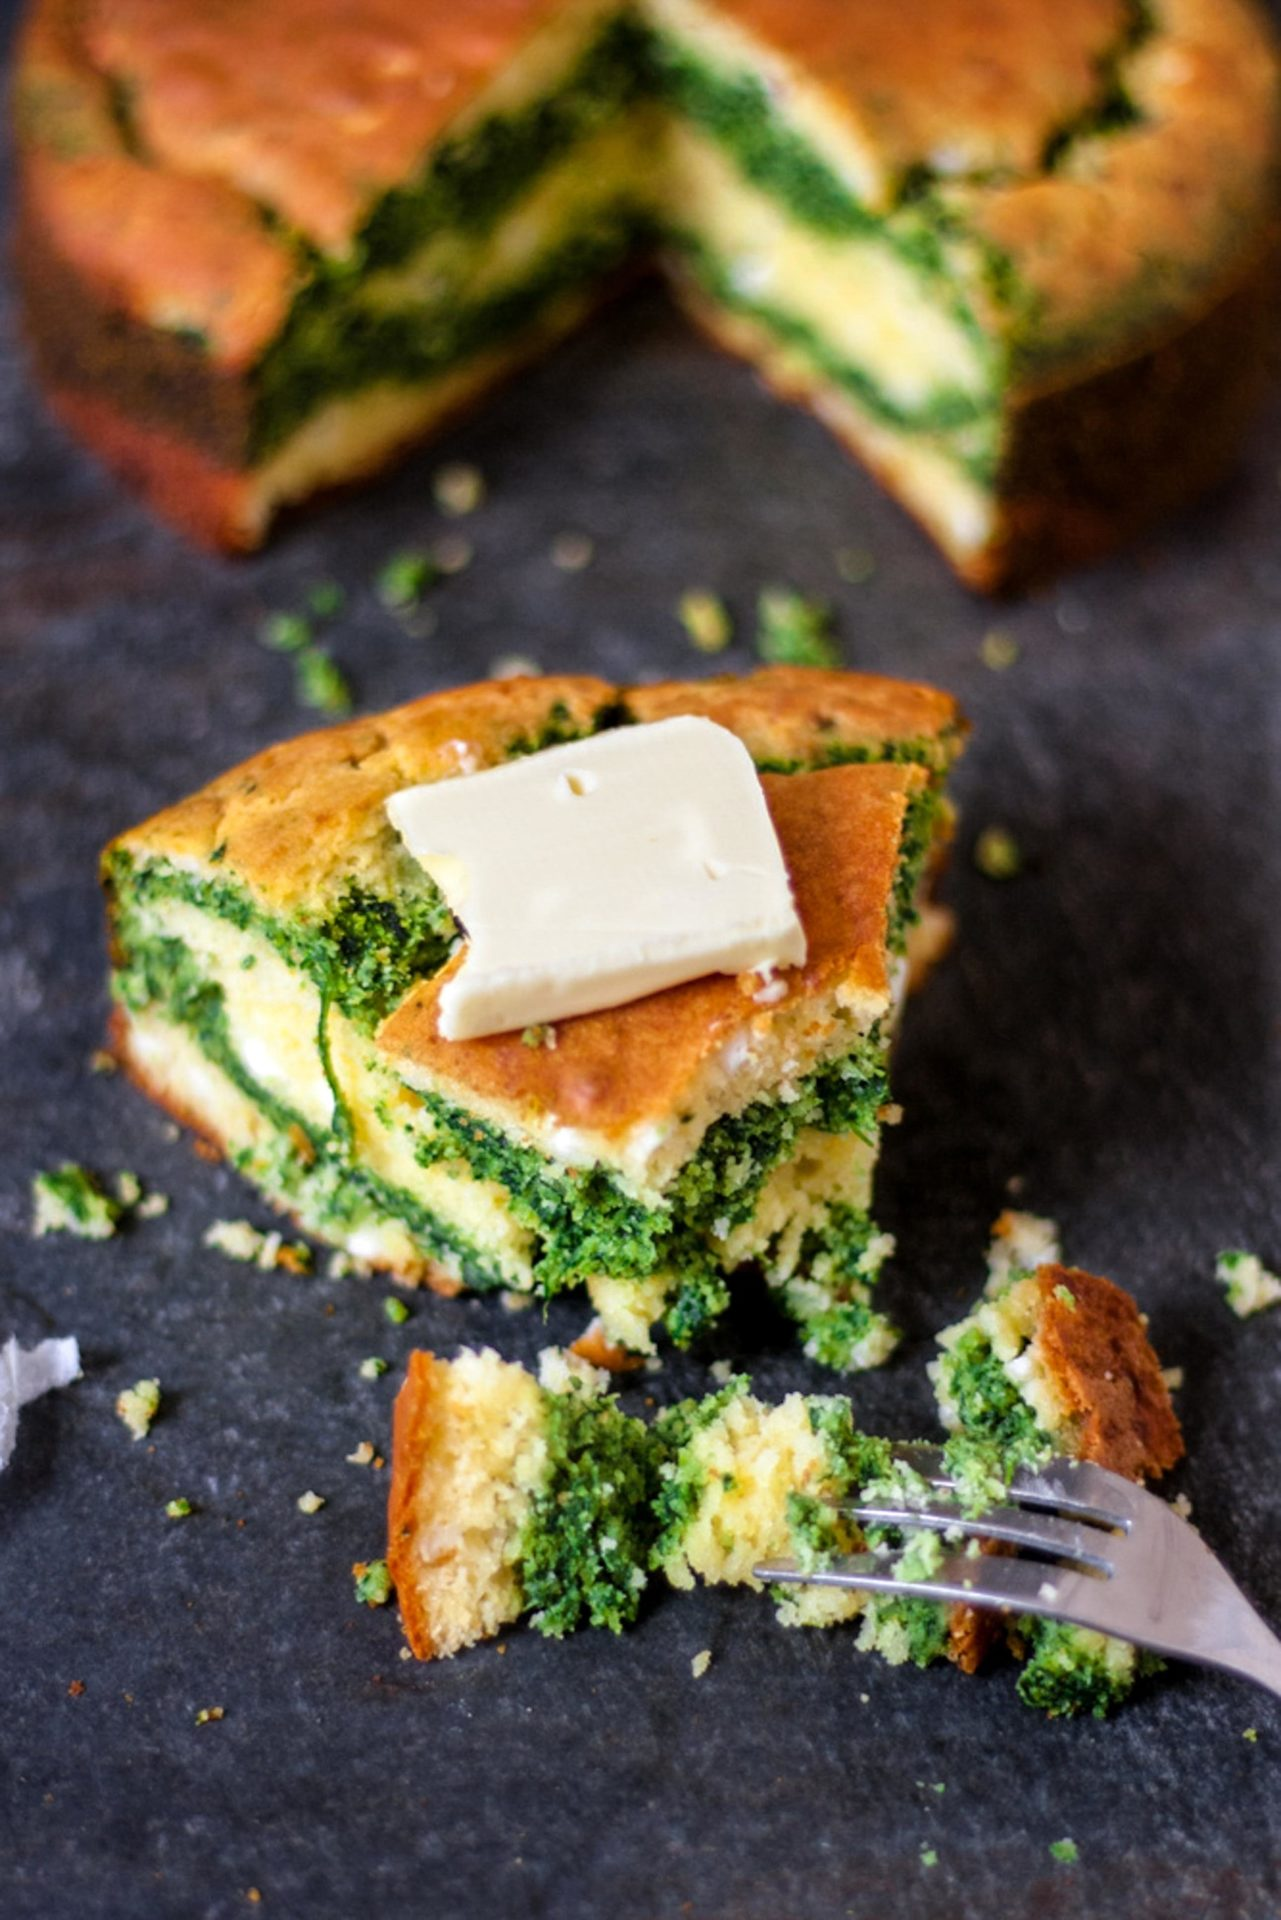 Gluten free cornbread with feta and spinach.